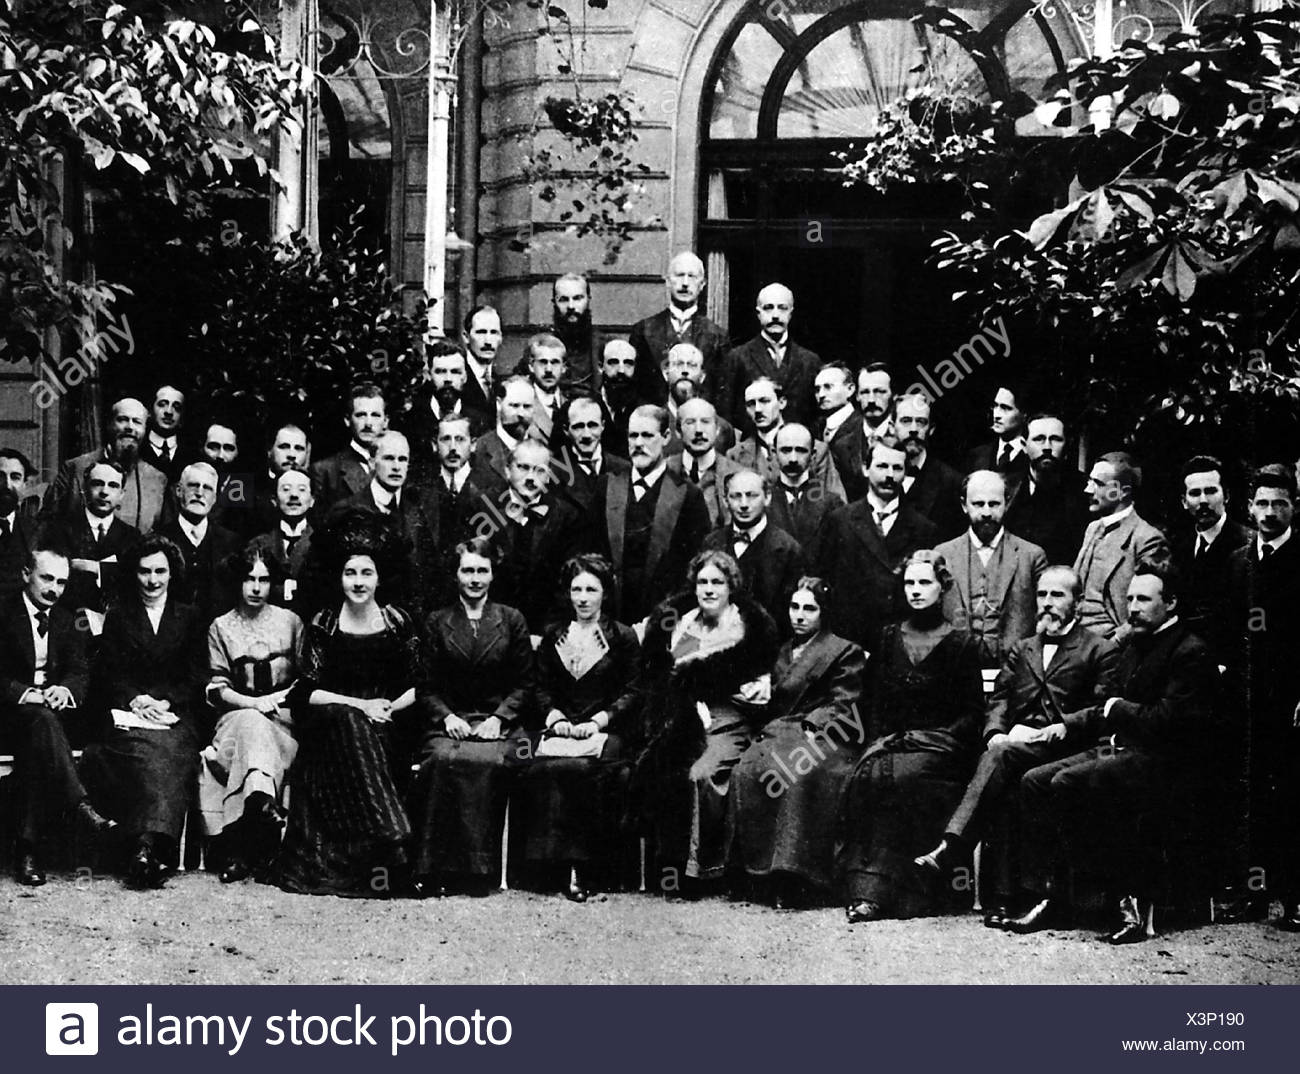 Freud, Sigmund, 6.5.1856 - 23.9.1939, Austrian physician, founder of the psychoanalytic school of psychology, second row, centre, standing, half length, congress in Weimar, half length, female, woman, women, , Additional-Rights-Clearances-NA - Stock Image